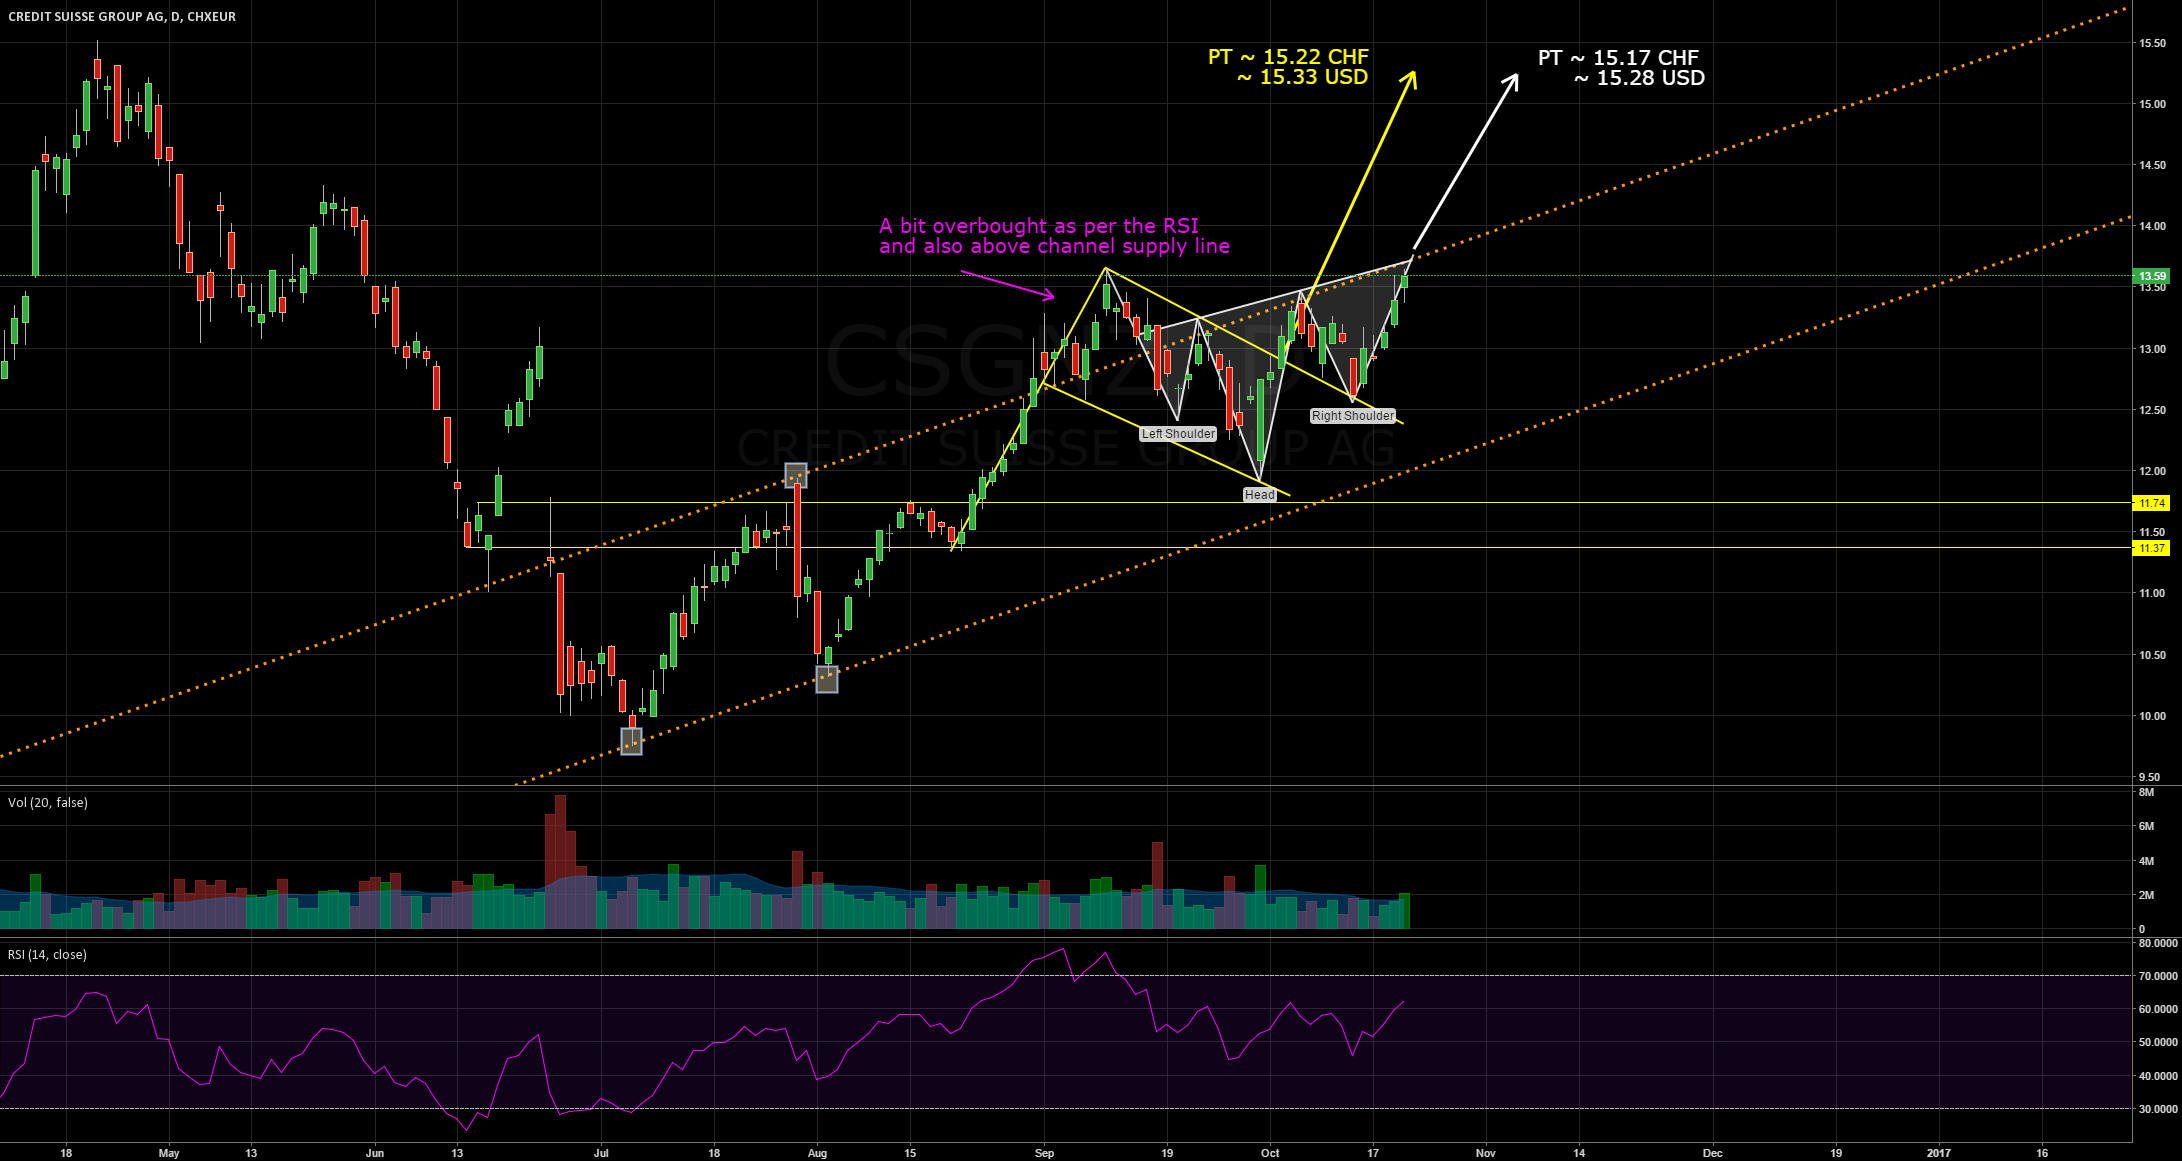 Inverse Head and Shoulders with same PT as Bull Flag